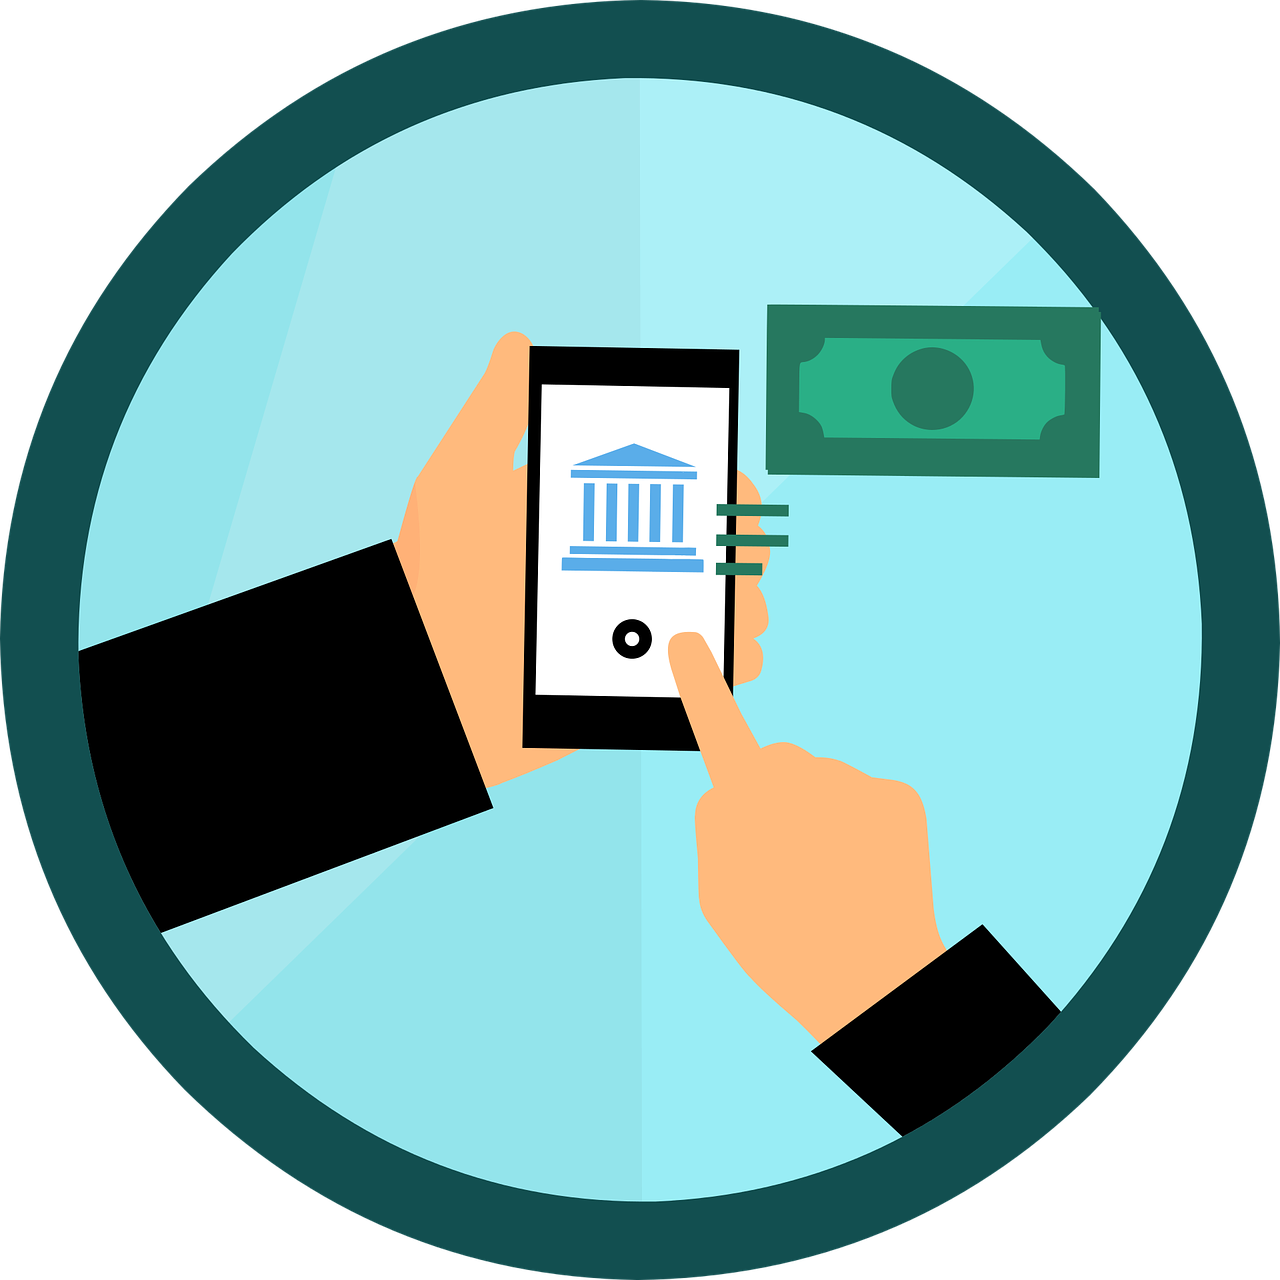 Six Strategic Implications for Today's Mobile Banking Environment: